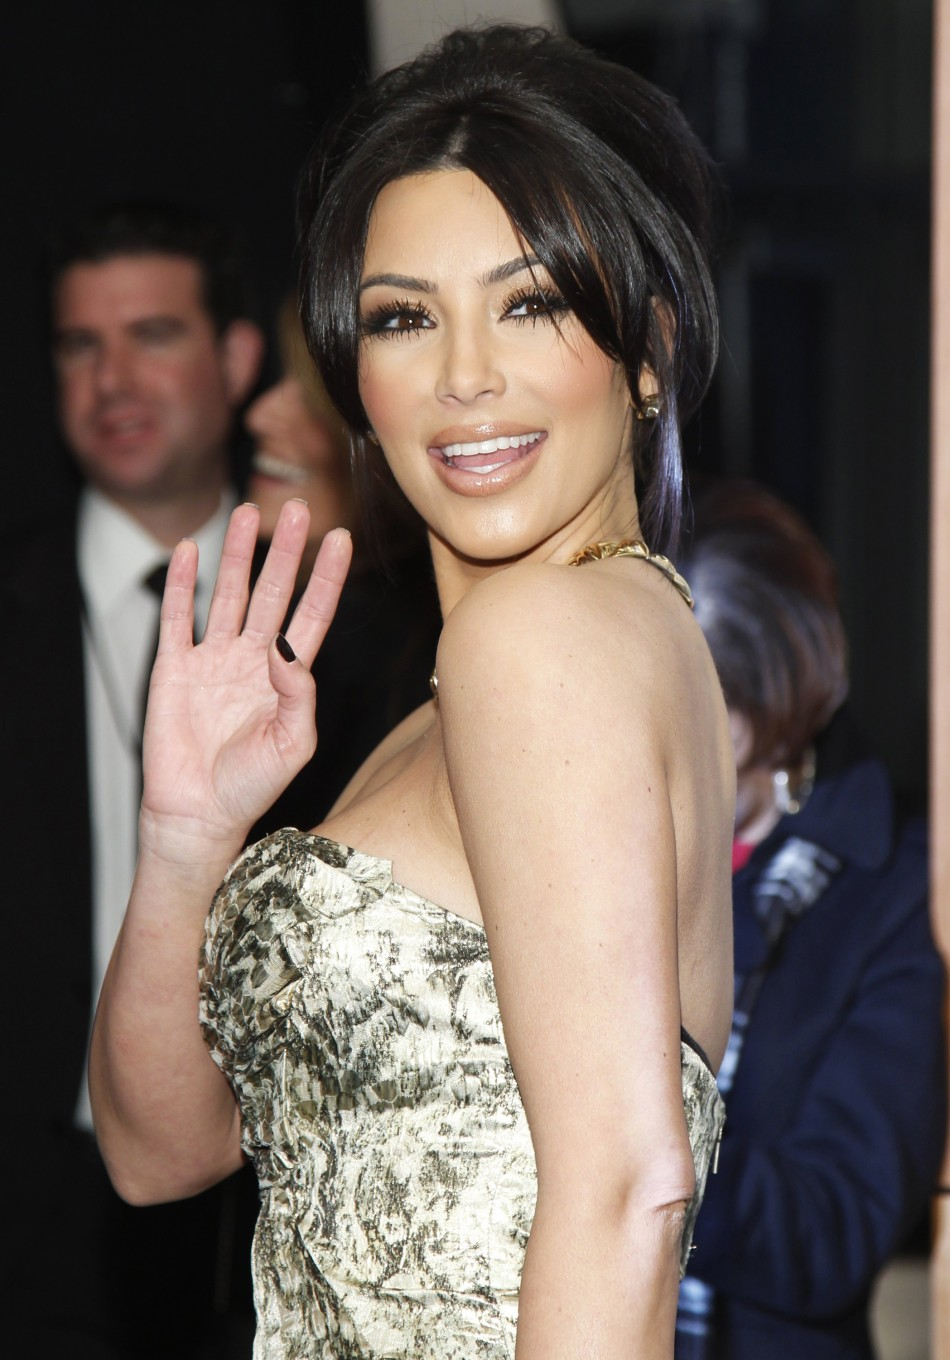 Reality TV star Kim Kardashian poses after winning the favorite guilty pleasure award at the 2011 People039s Choice Awards in Los Angeles